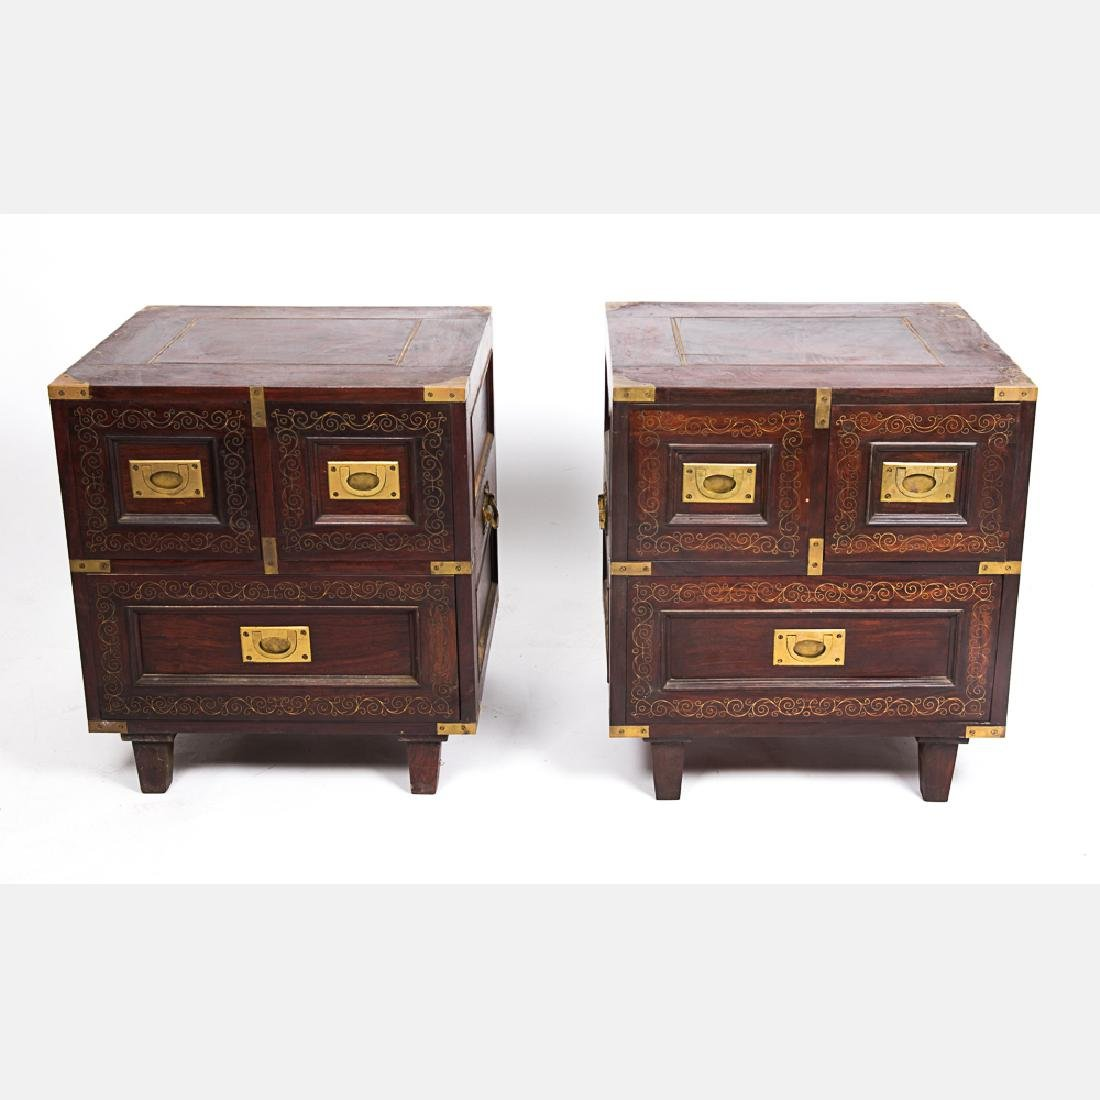 A Pair of Campaign Style Mahogany and Brass Side Tables